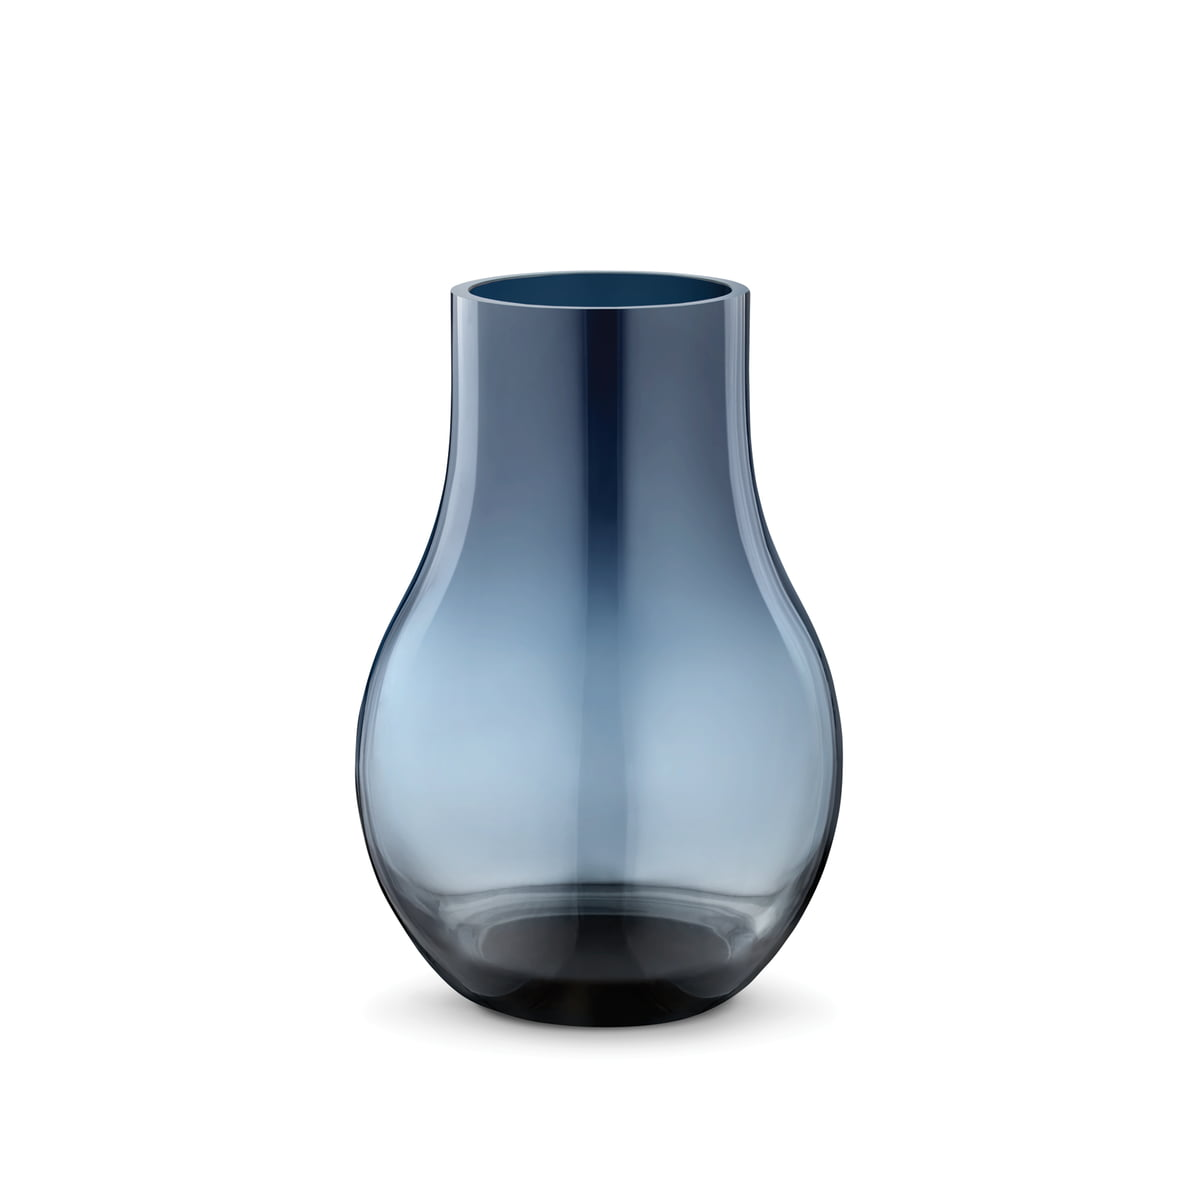 Bodenvase Glas the cafu vase out of glass by georg